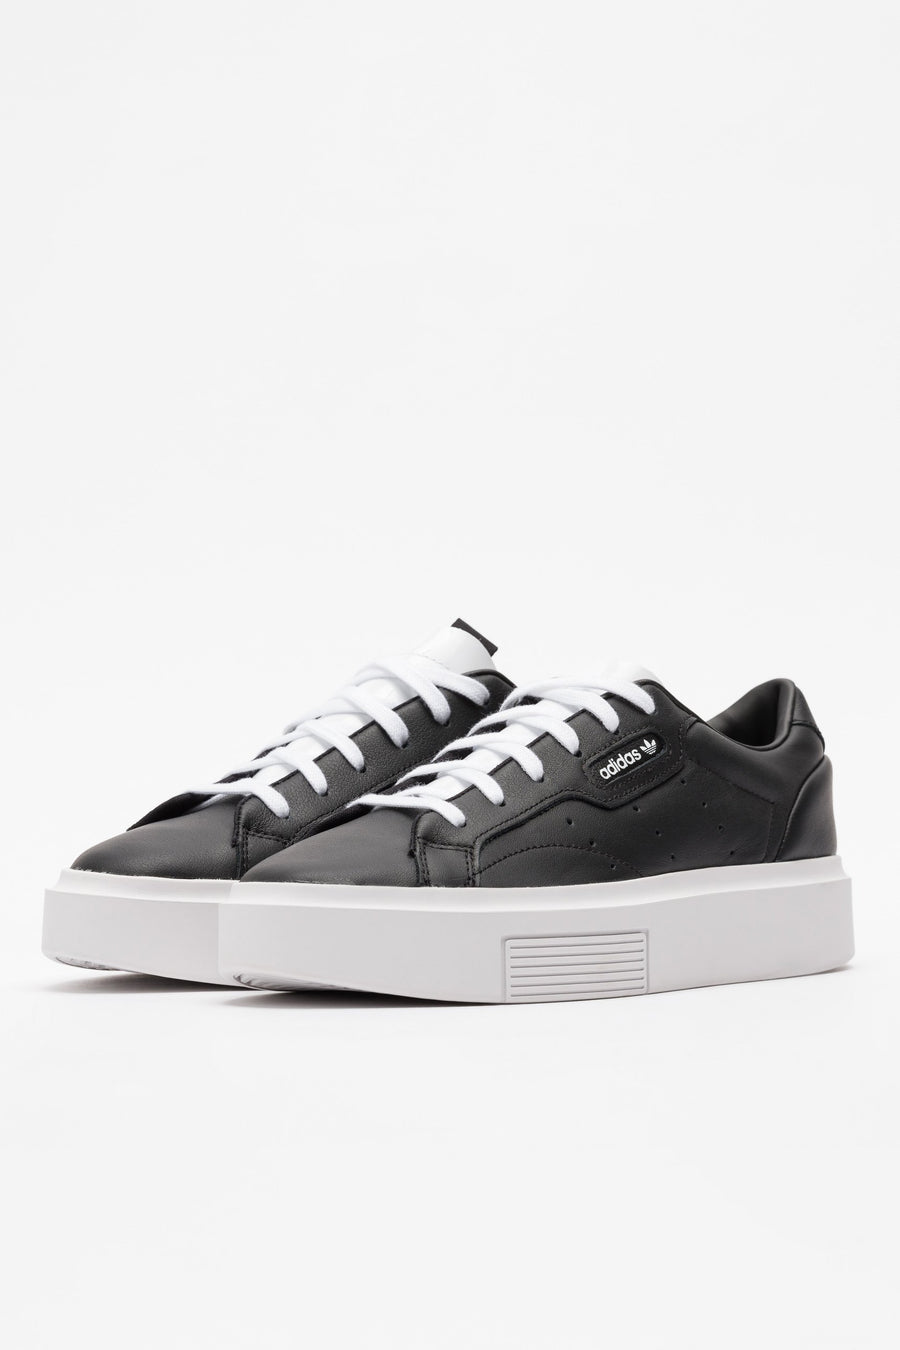 adidas Sleek Super in Black - Notre